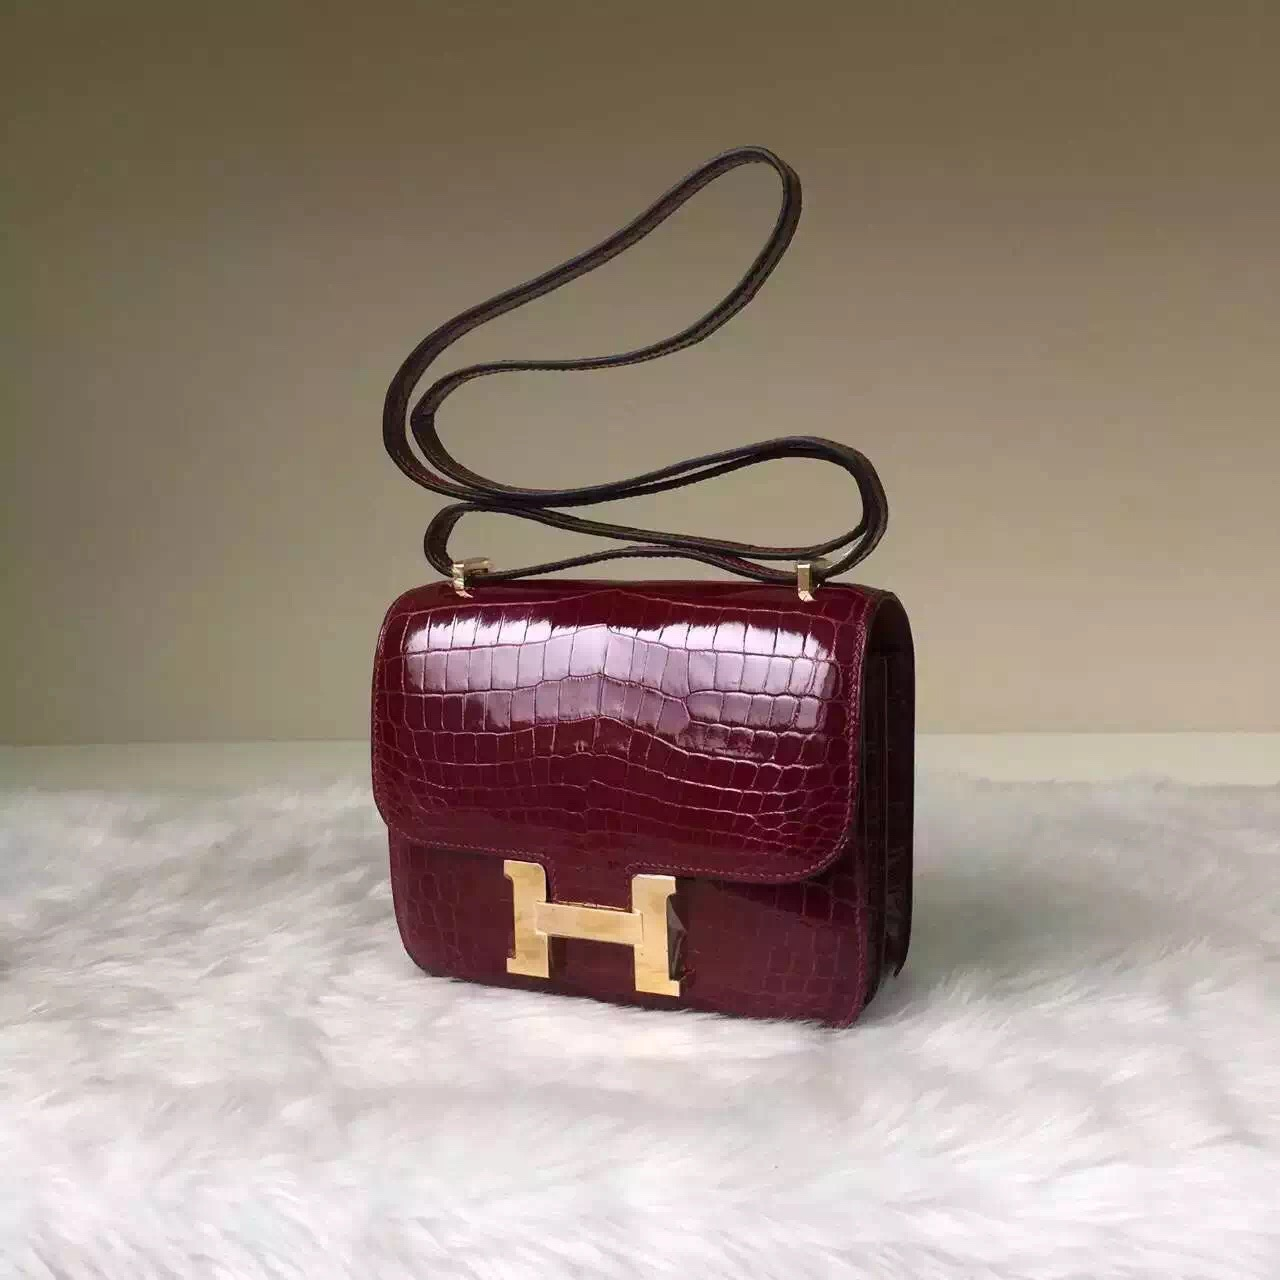 Hand Stitching Hermes Constance Bag 19CM Bourgogne Red HCP Crocodile Leather